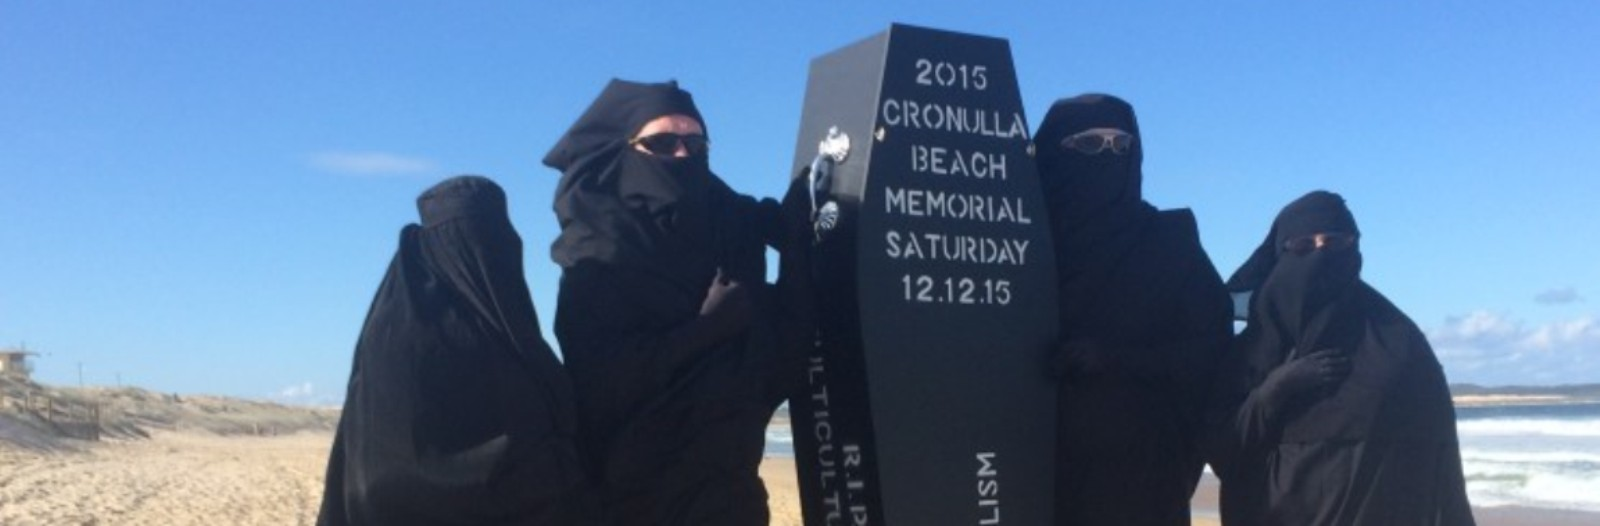 "A ""permanent Cronulla""? New hate groups changing the racist stakes"